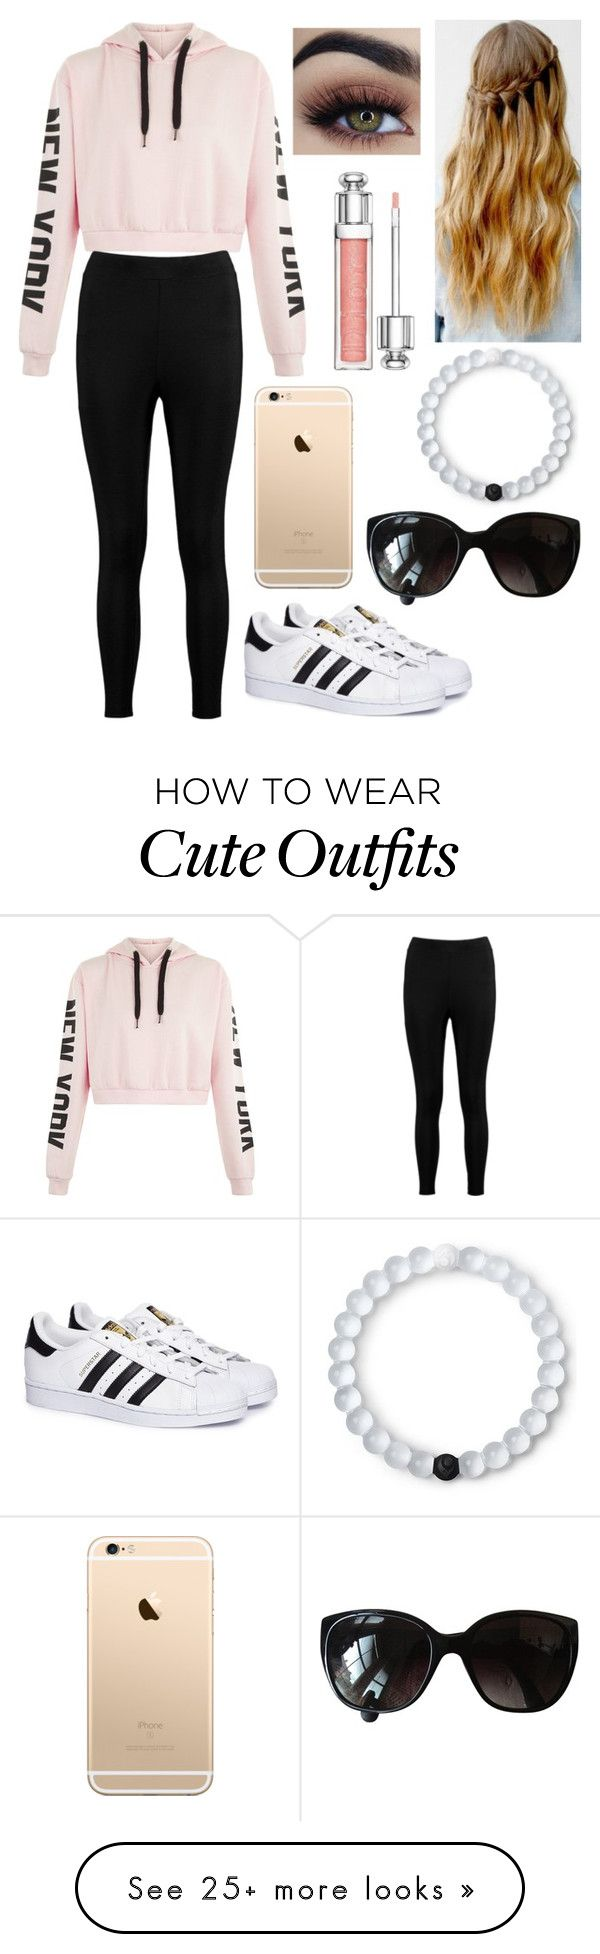 """Cute Outfit for A Chill Day"" by ashrushzoo on Polyvore featuring Boohoo, adidas, Chanel, Lokai and Christian Dior"